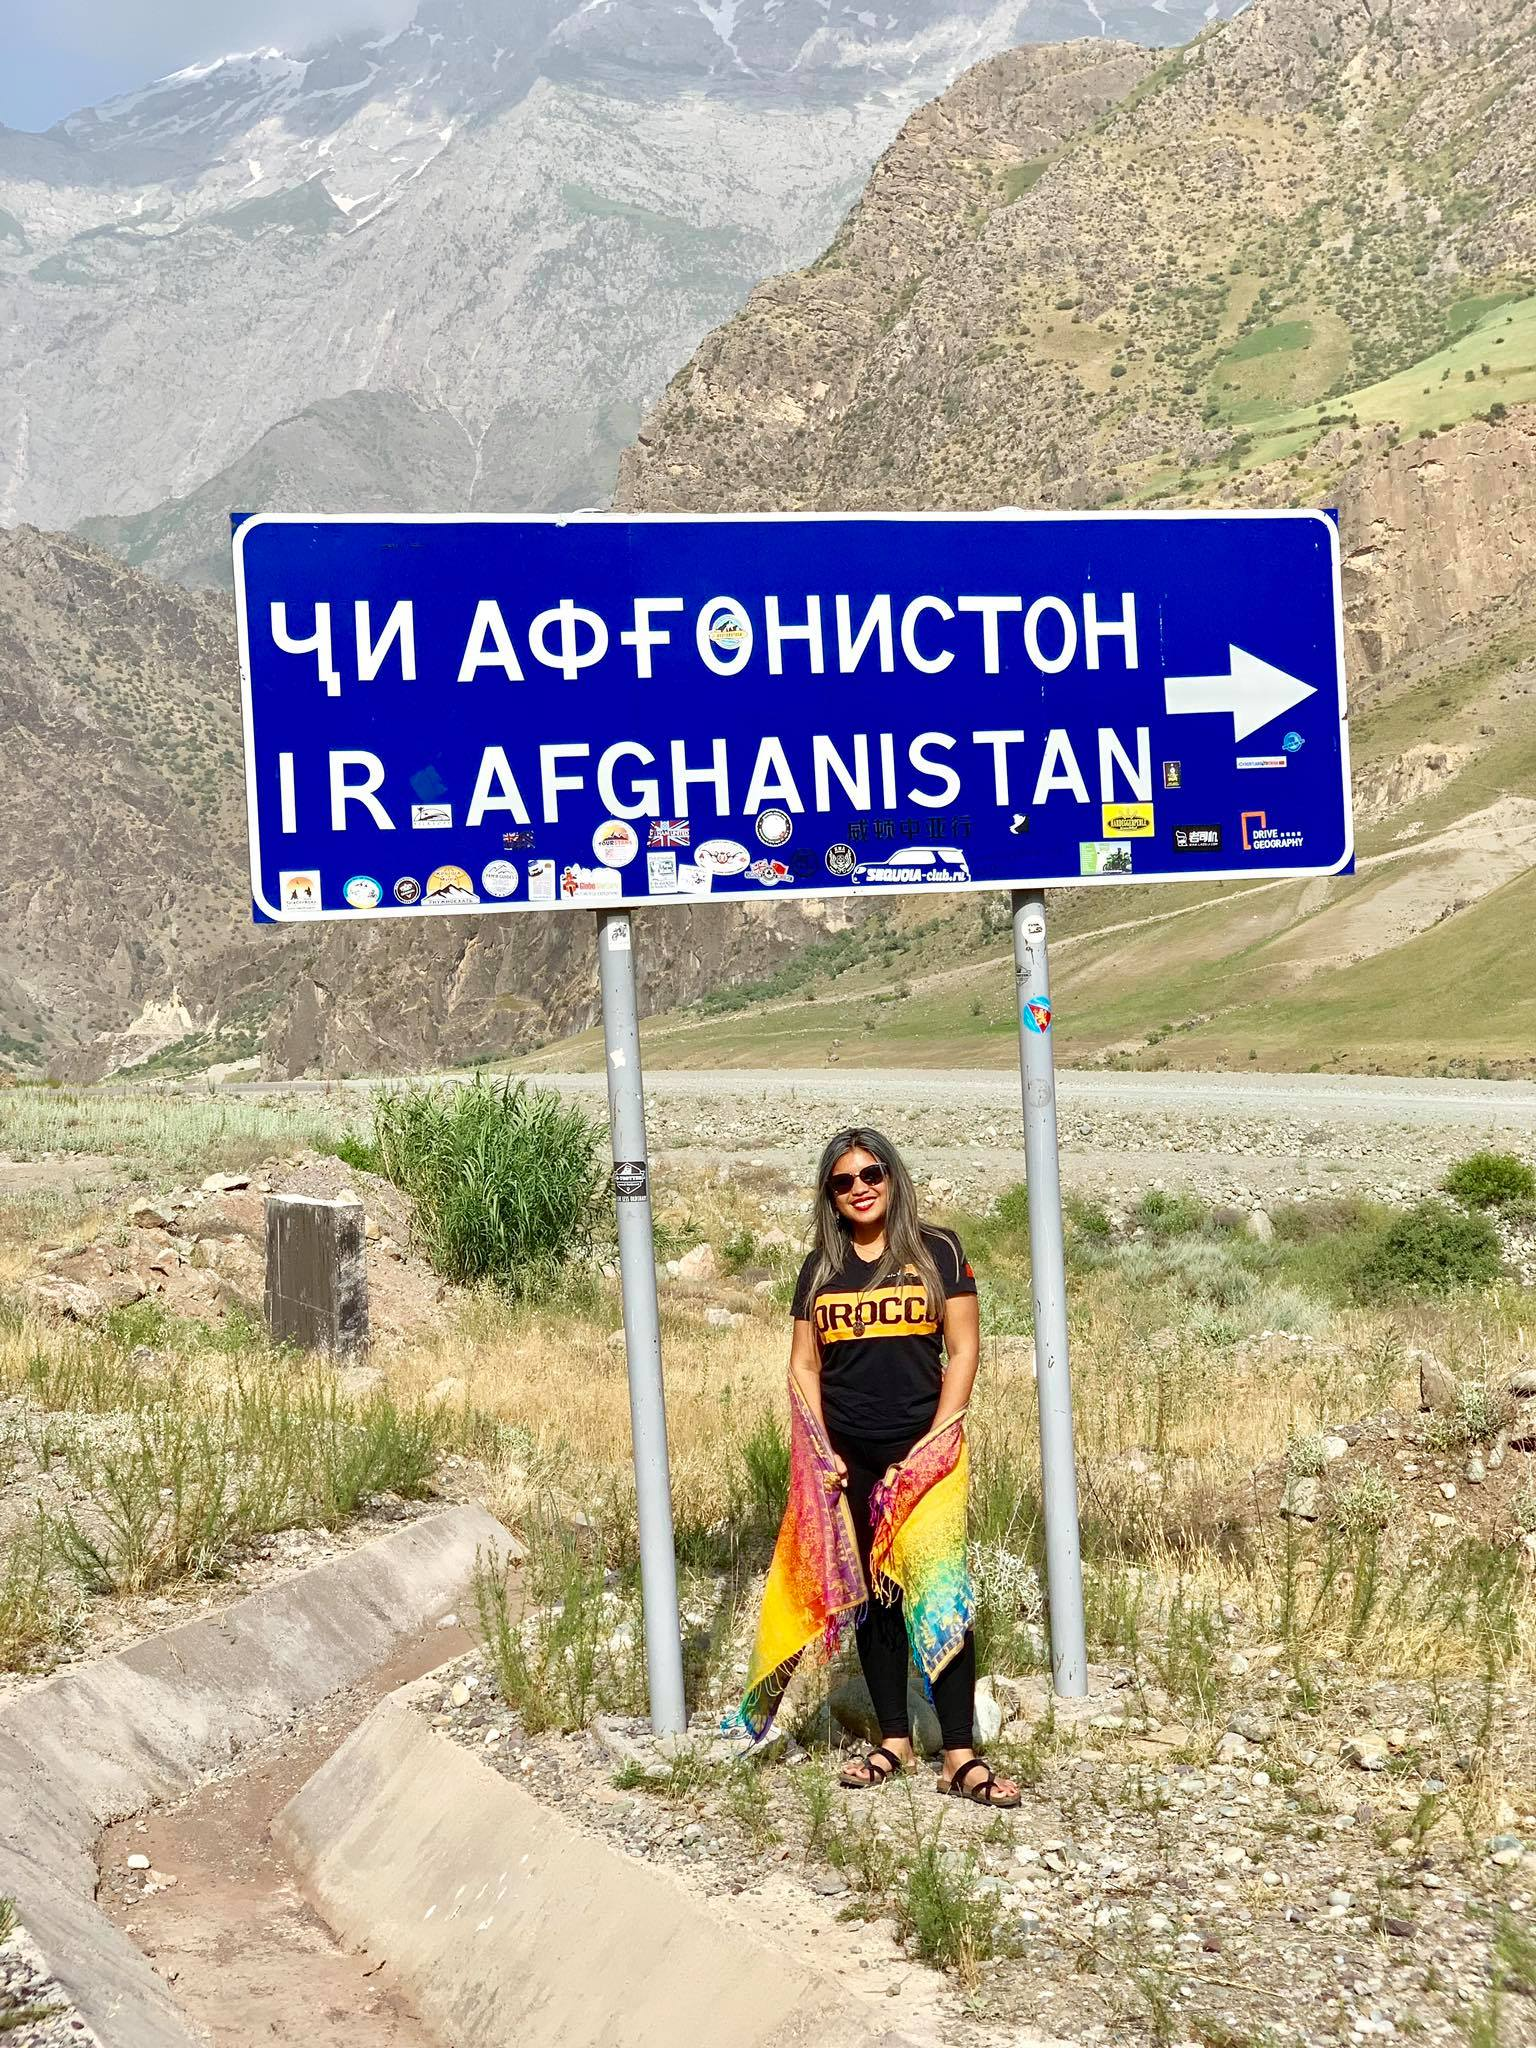 Kach Solo Travels in 2019  Beginning of my silk road overland journey in Central Asia11.jpg